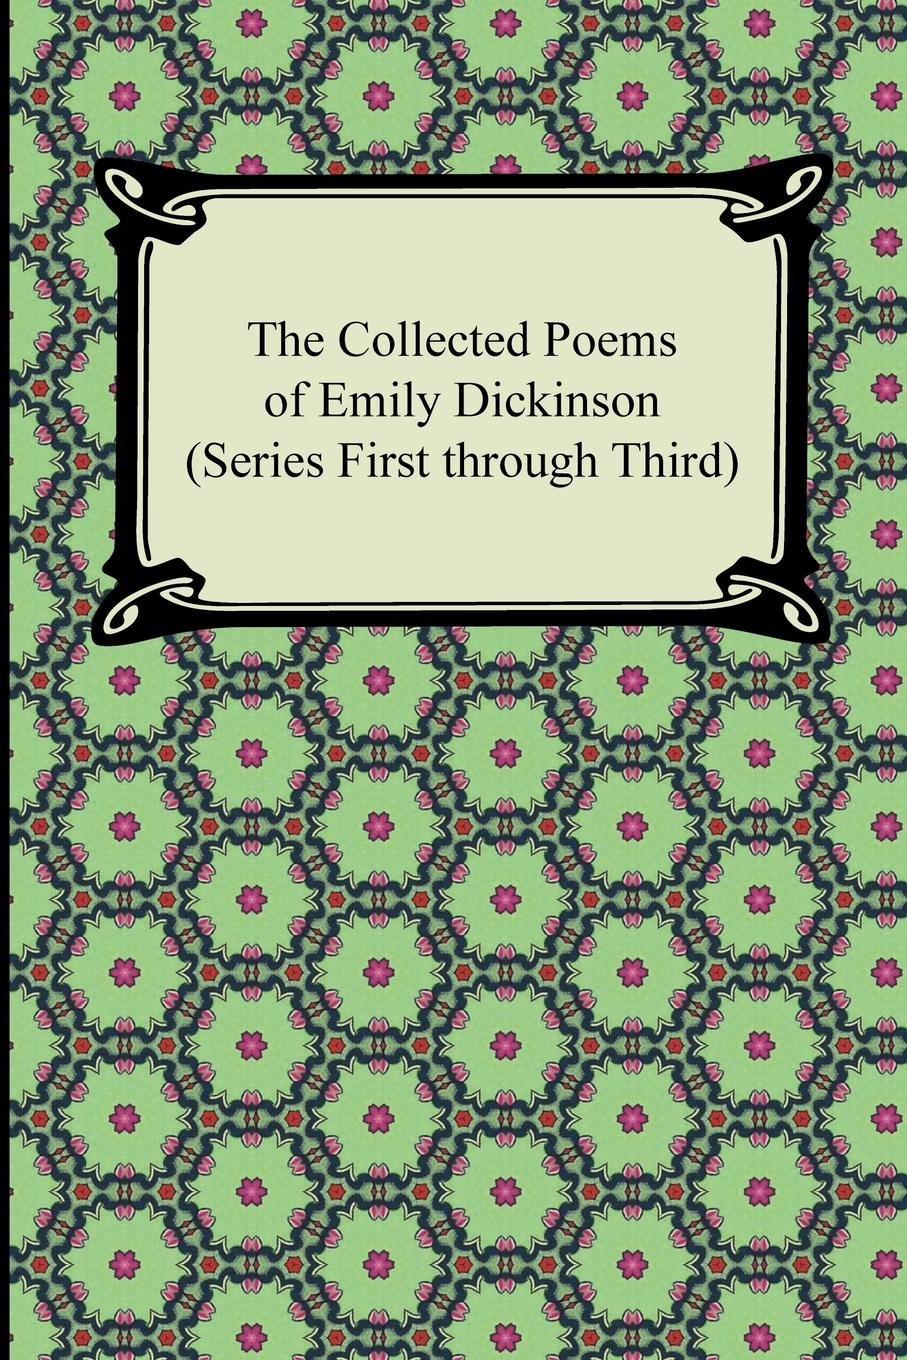 Emily Dickinson The Collected Poems of Emily Dickinson (Series First Through Third)